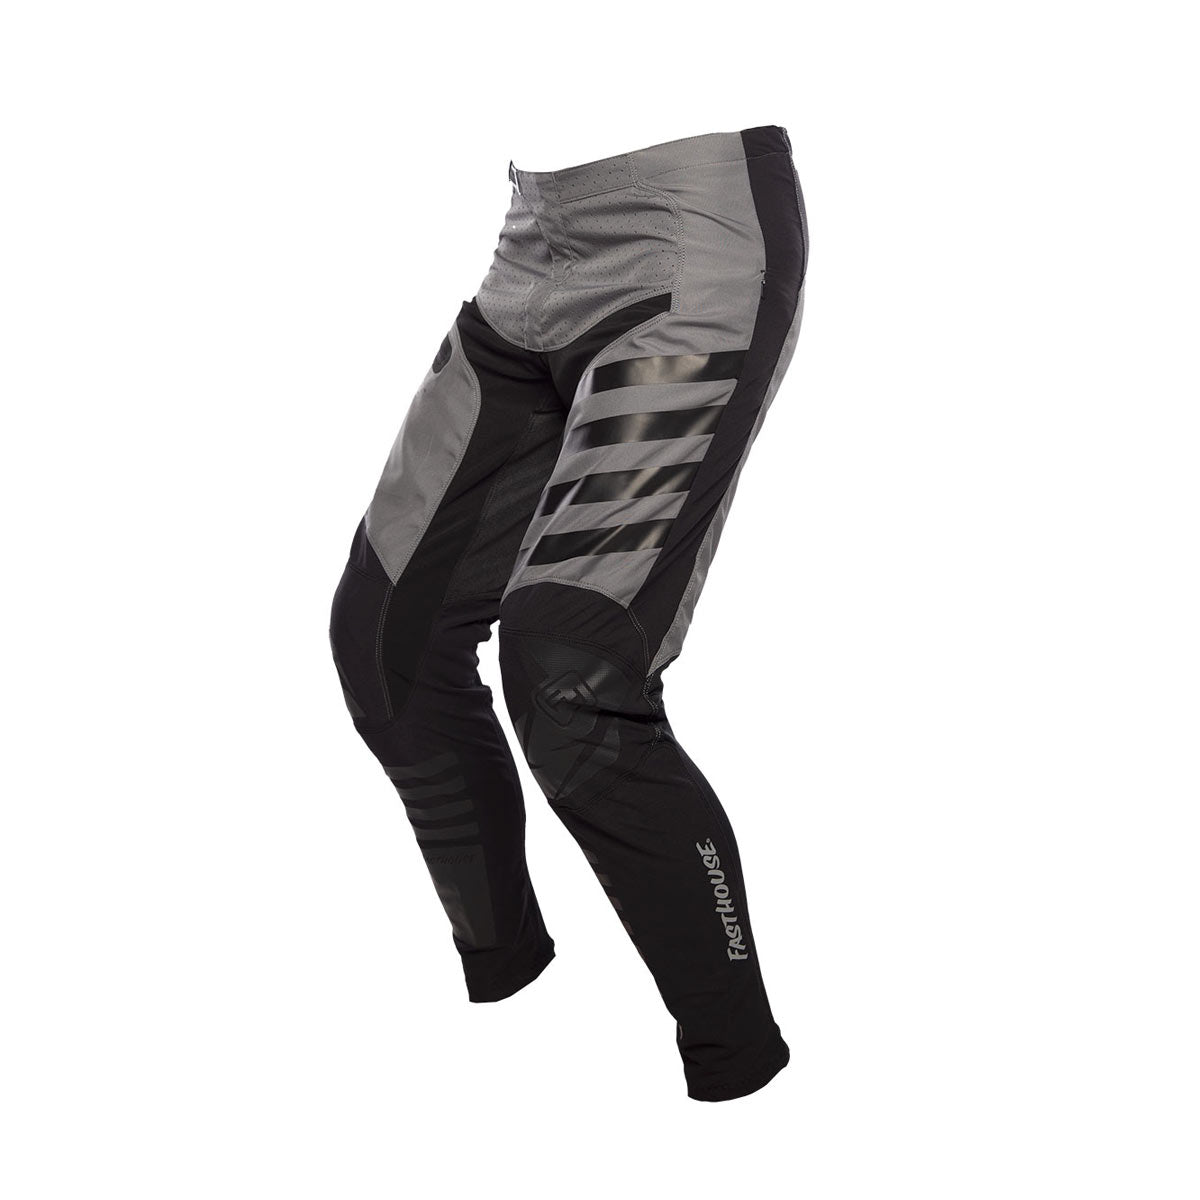 Fastline 2 Youth MTB Pants - Charcoal